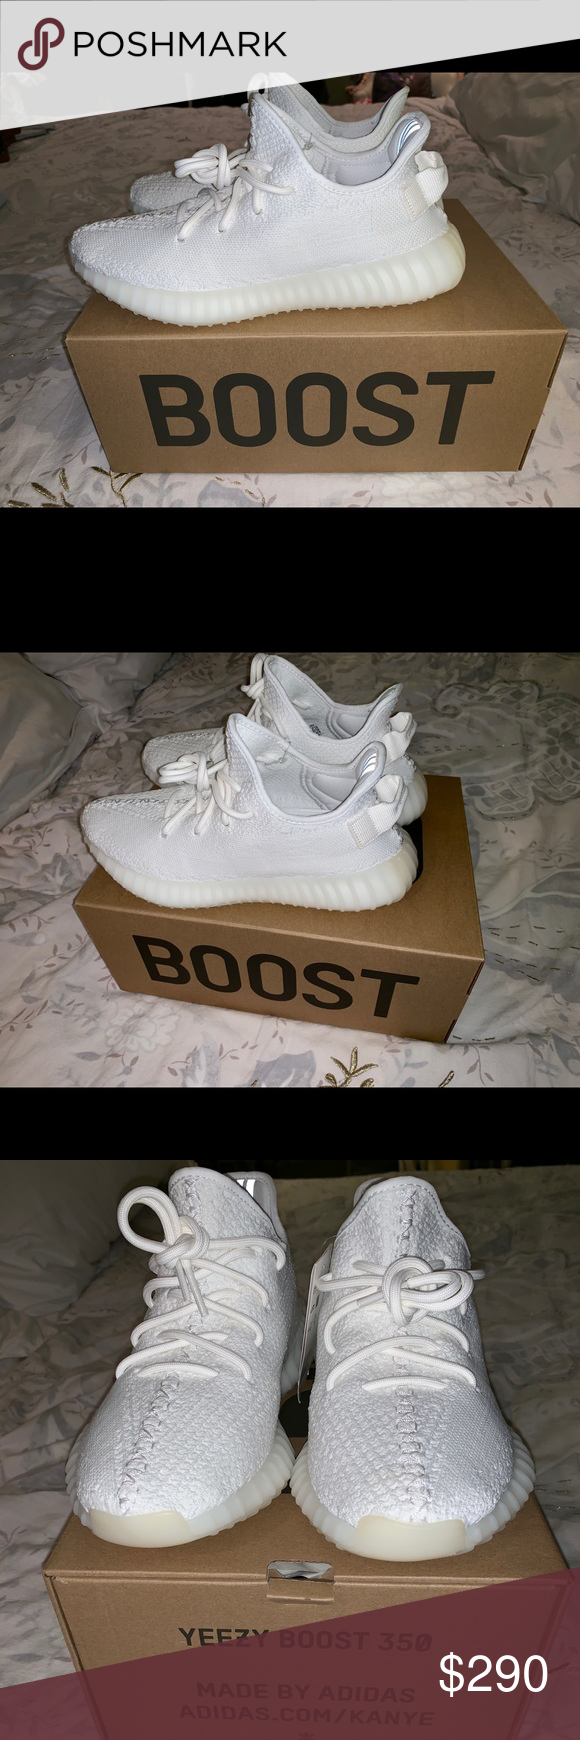 caabc391b Yeezy Boost 350 V2 Triple All White Yeezy 350 V2 Triple White Size 7 1 2  men s Brand new with tags never worn before I wear women s size 8 and these  are too ...